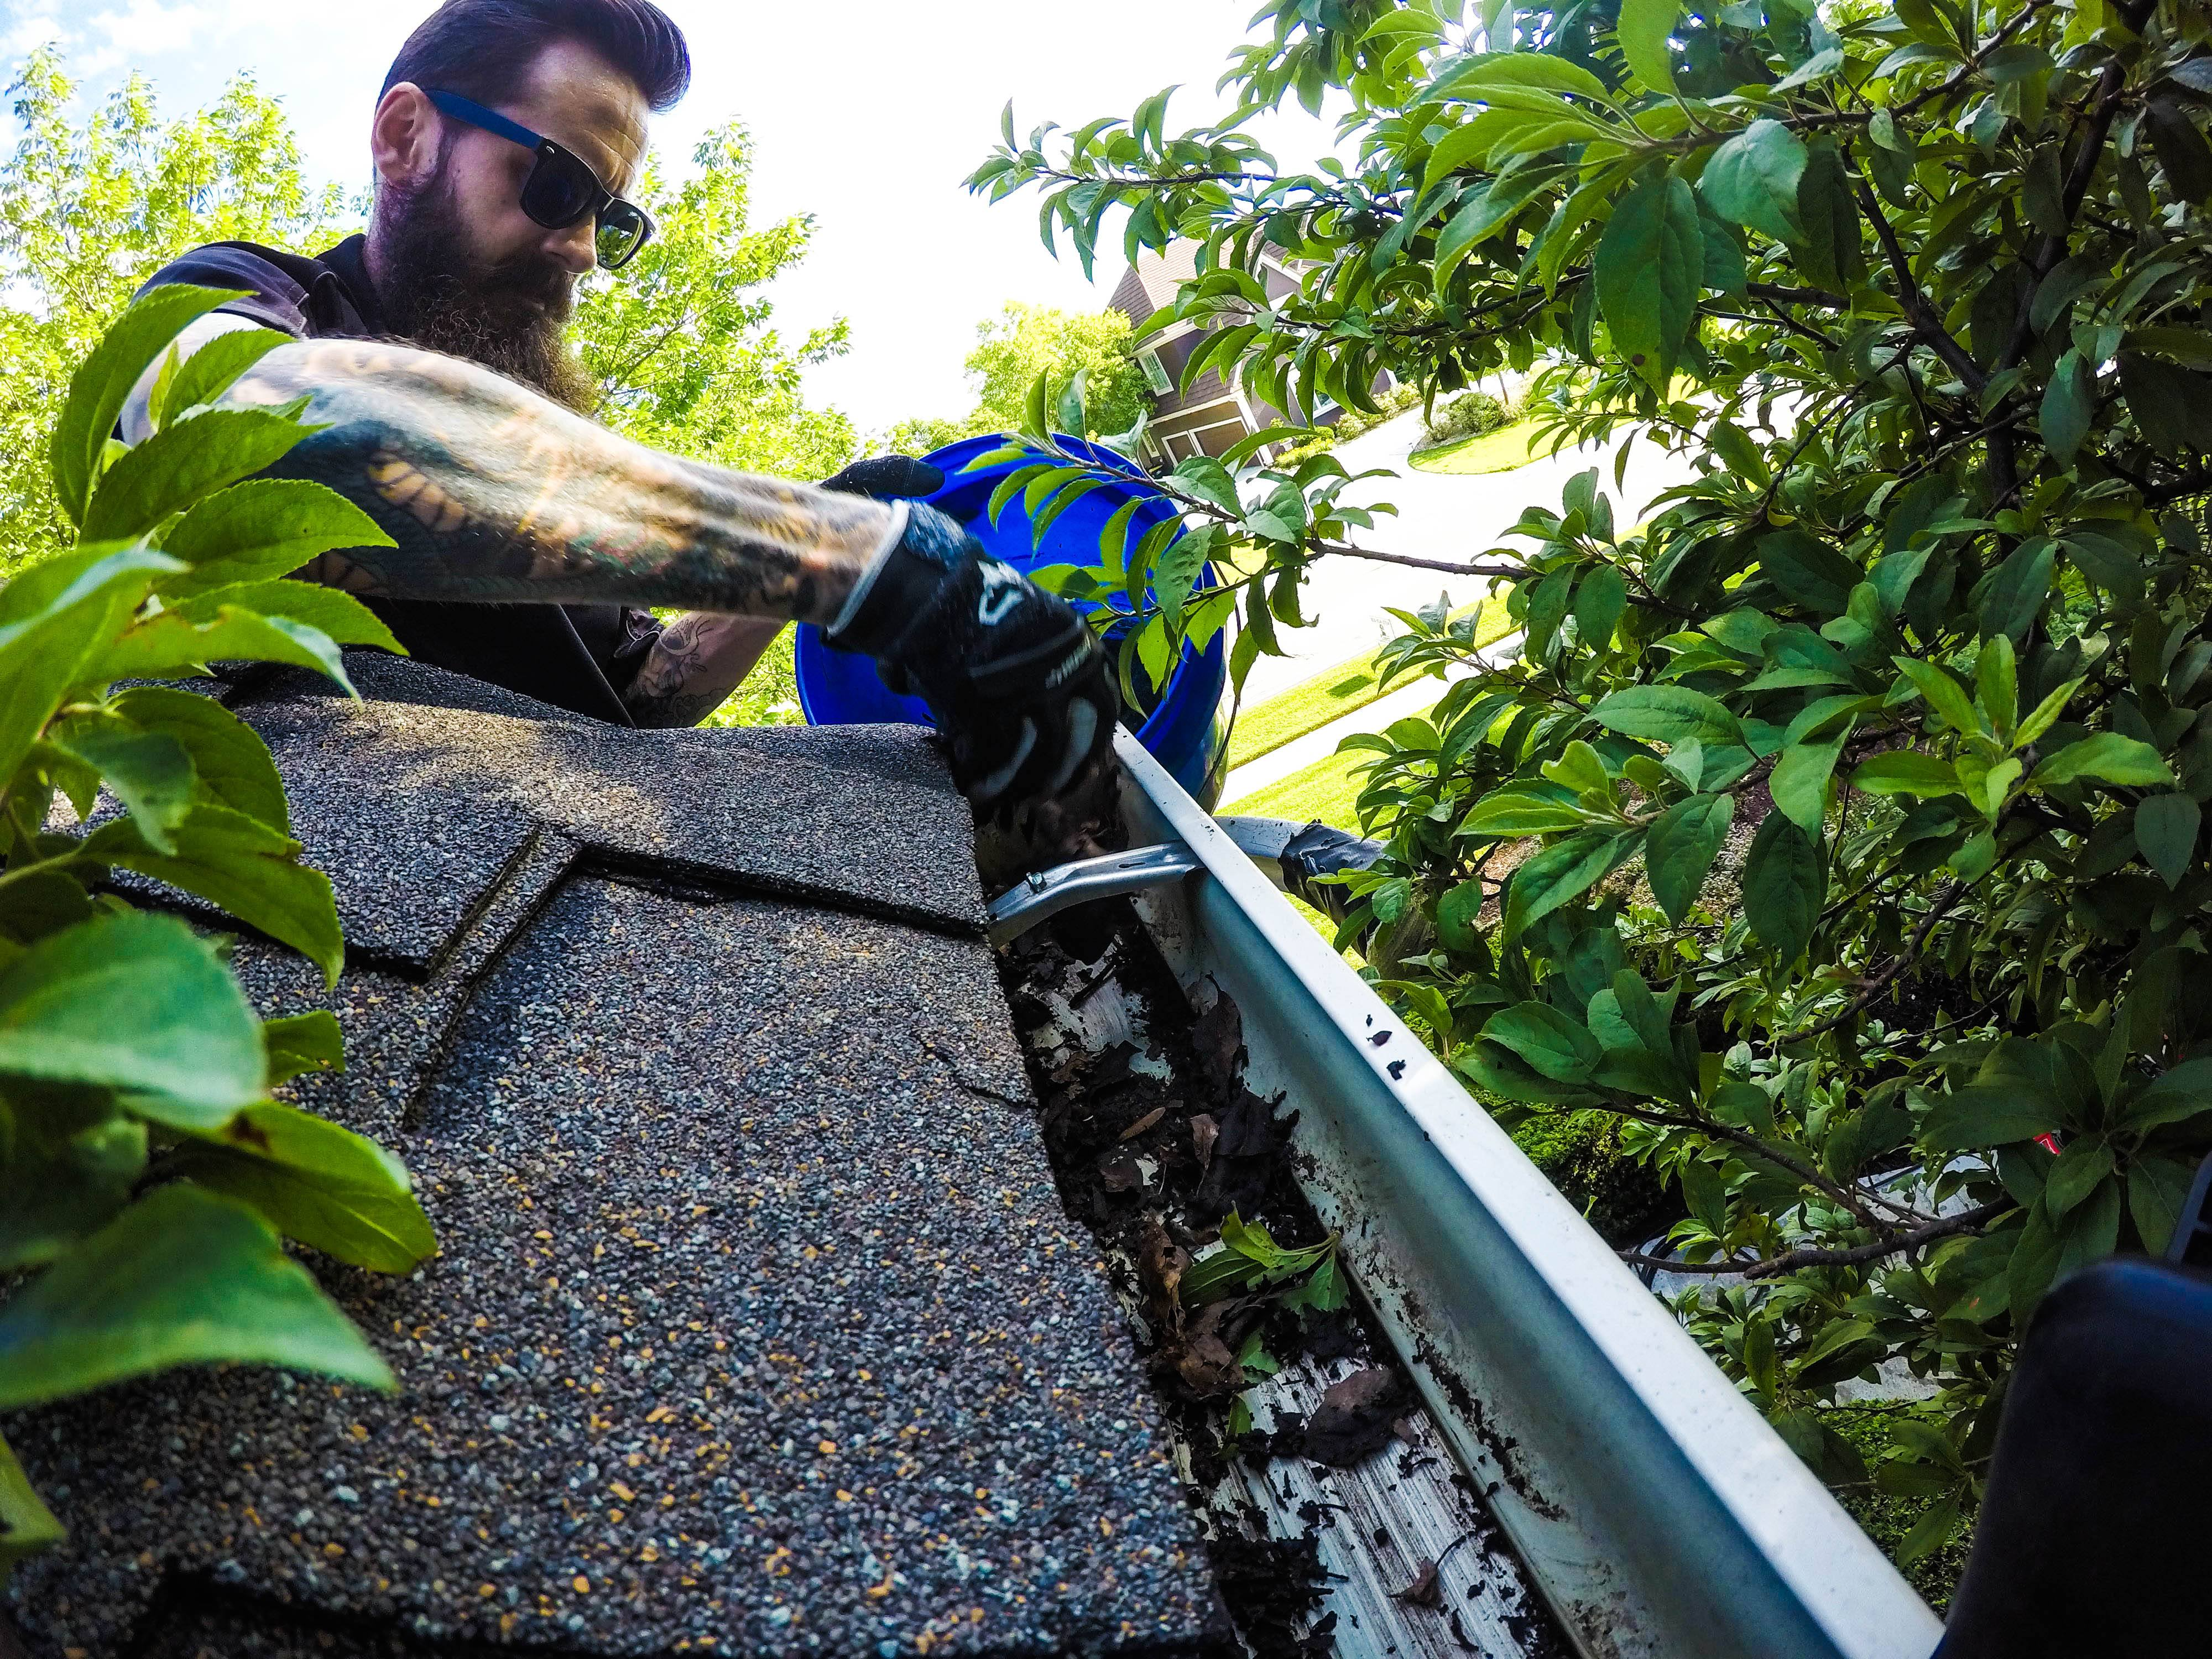 Gutter Cleaning in Kansas City, MO by Luke TWC